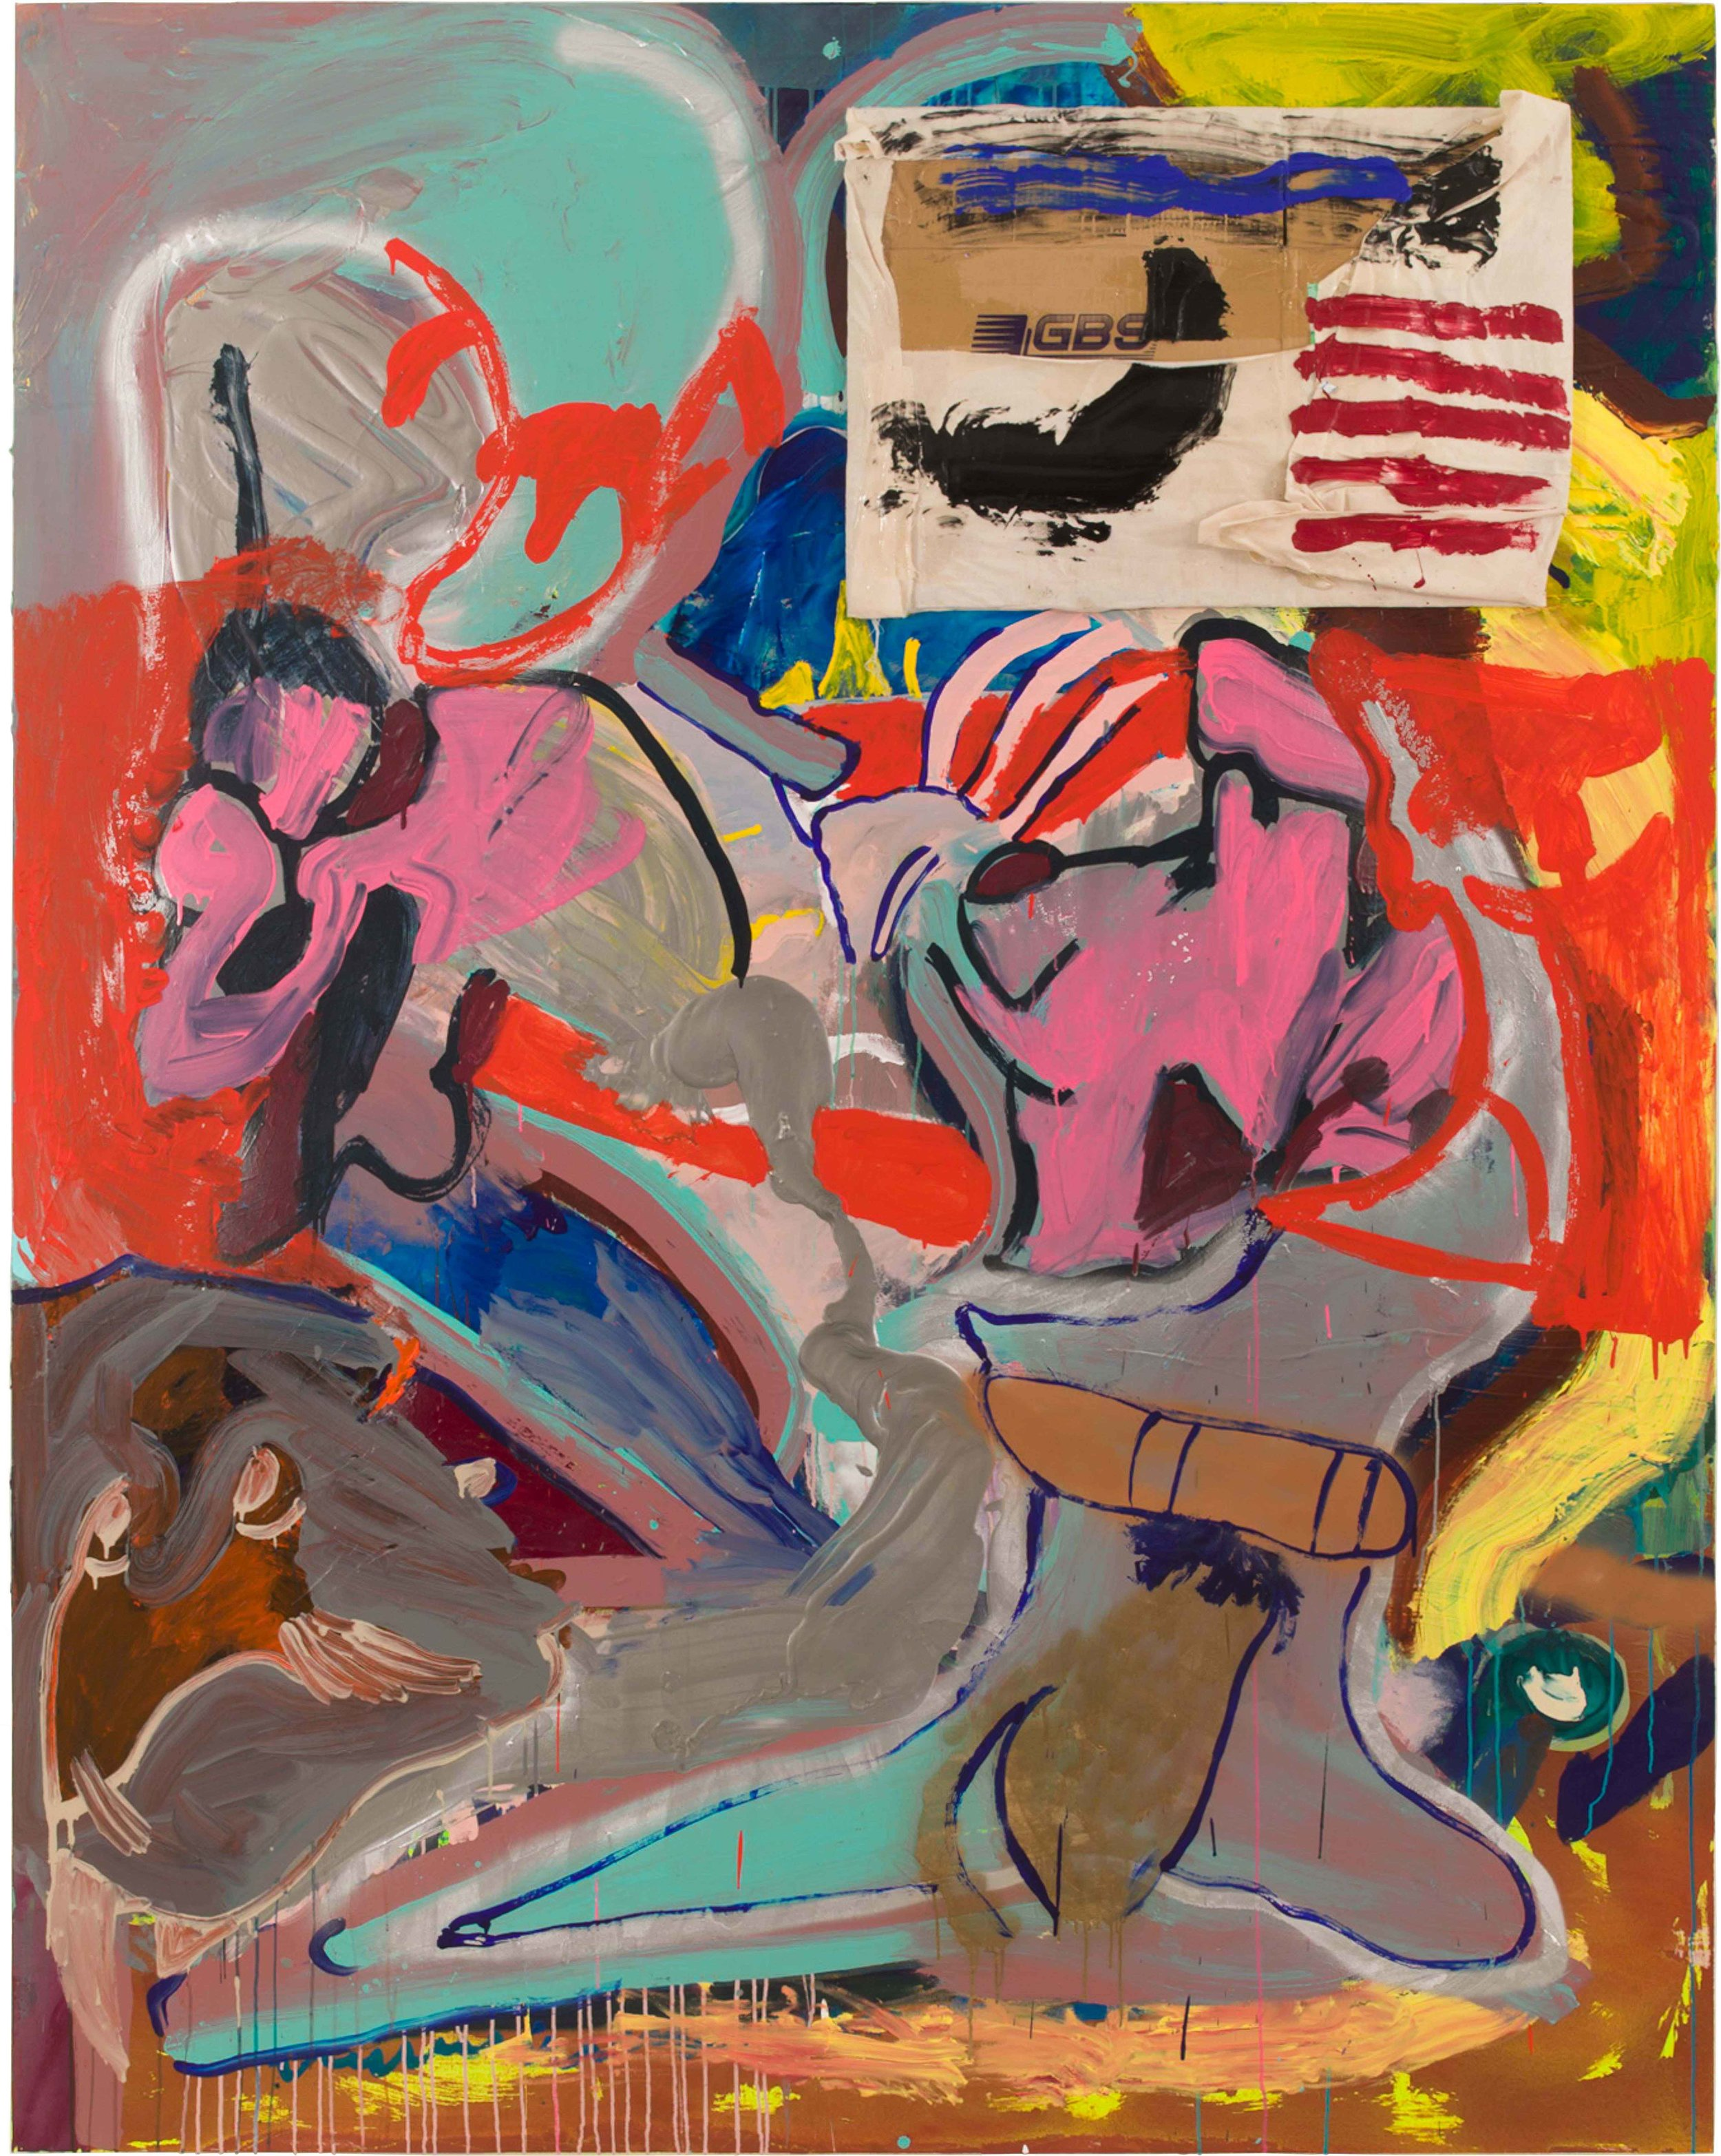 Drew Beattie and Ben Shepard  Bad Flag  2015 acrylic, spray paint and cardboard on canvas 96 x 76 inches